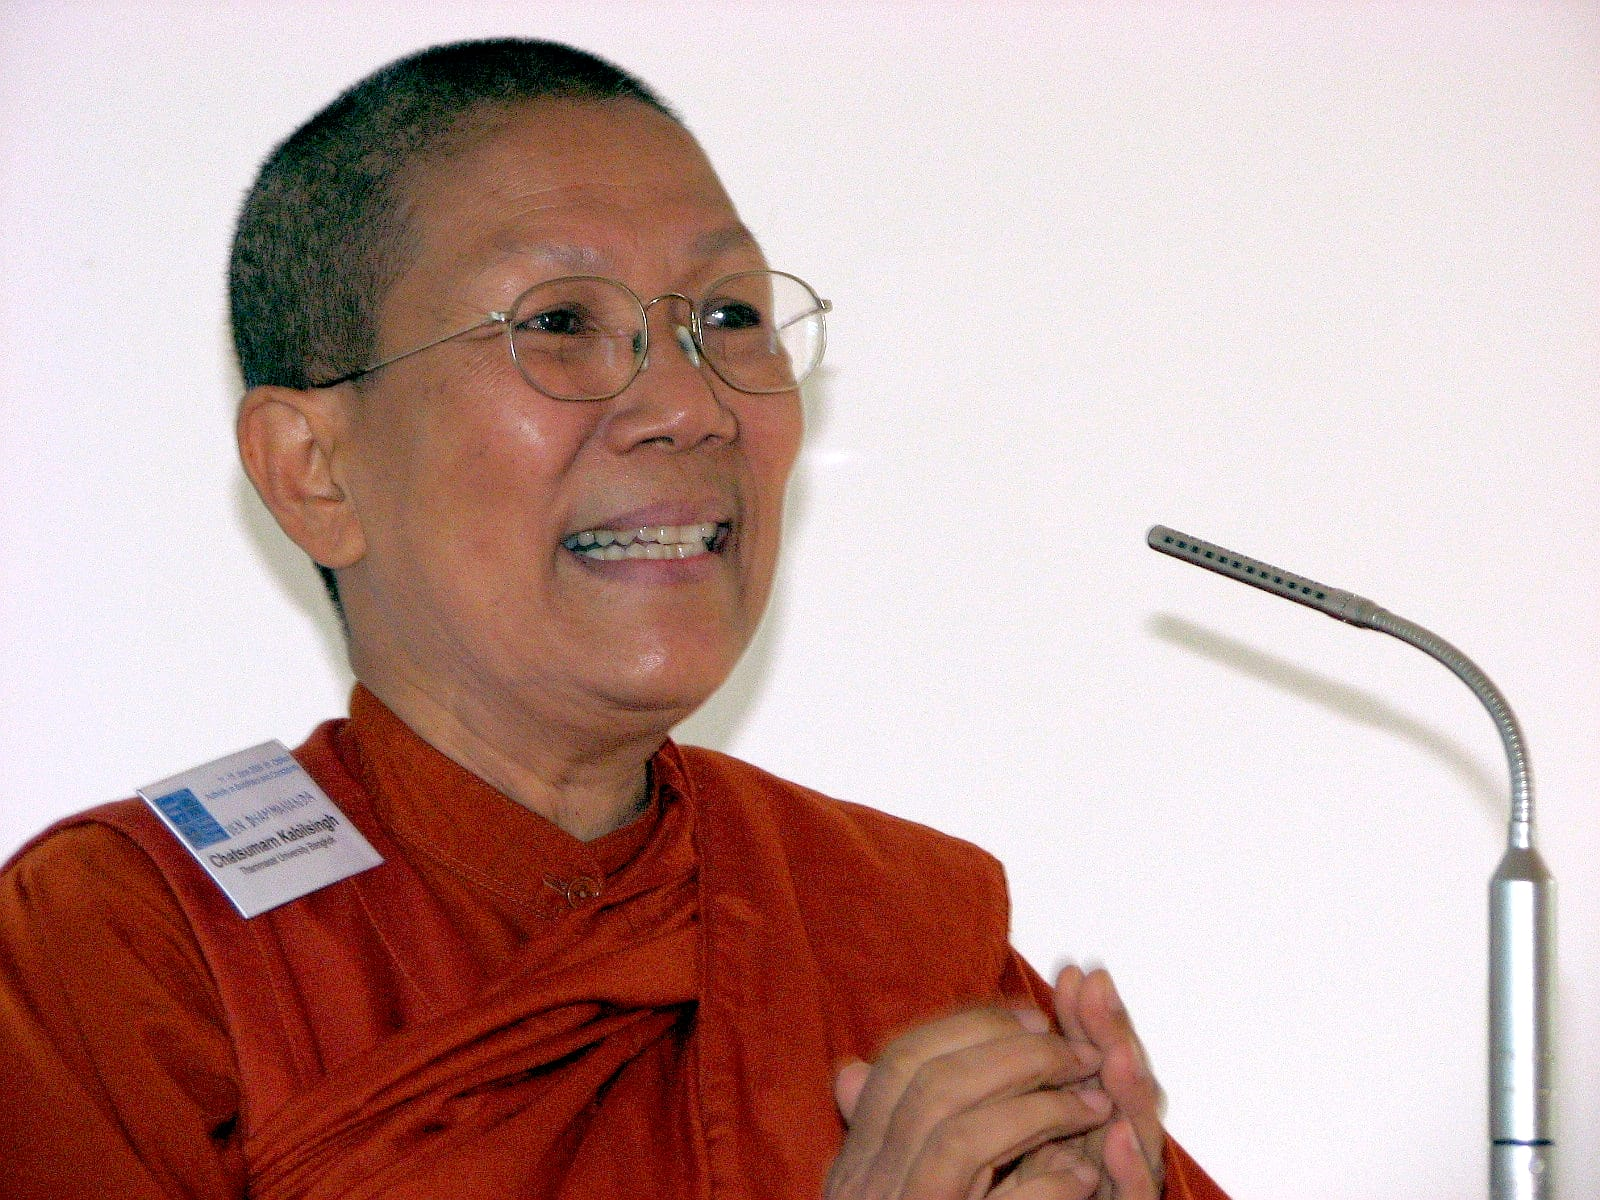 Venerable Dhammananda, Thai nuns, Thai Buddhism, nuns, ordination of nuns, ordination of women, Buddhist nuns, bhikkhuni